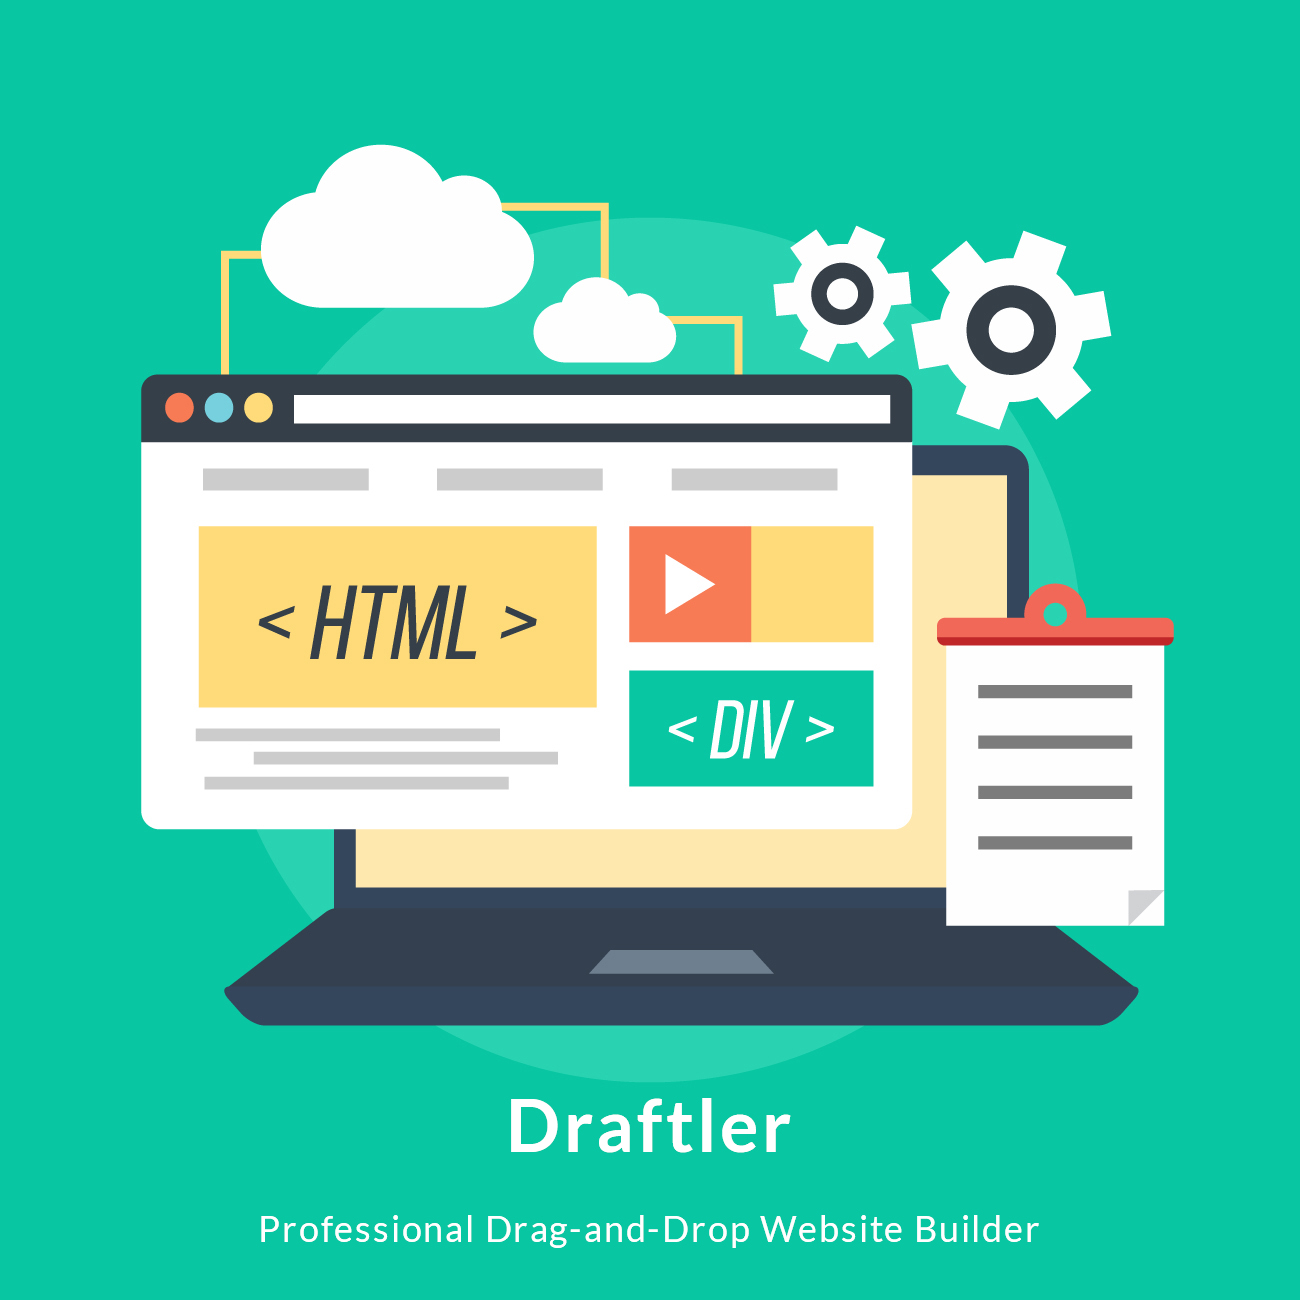 DRAFTLER - Professional Drag-And-Drop Website Builder Screenshot